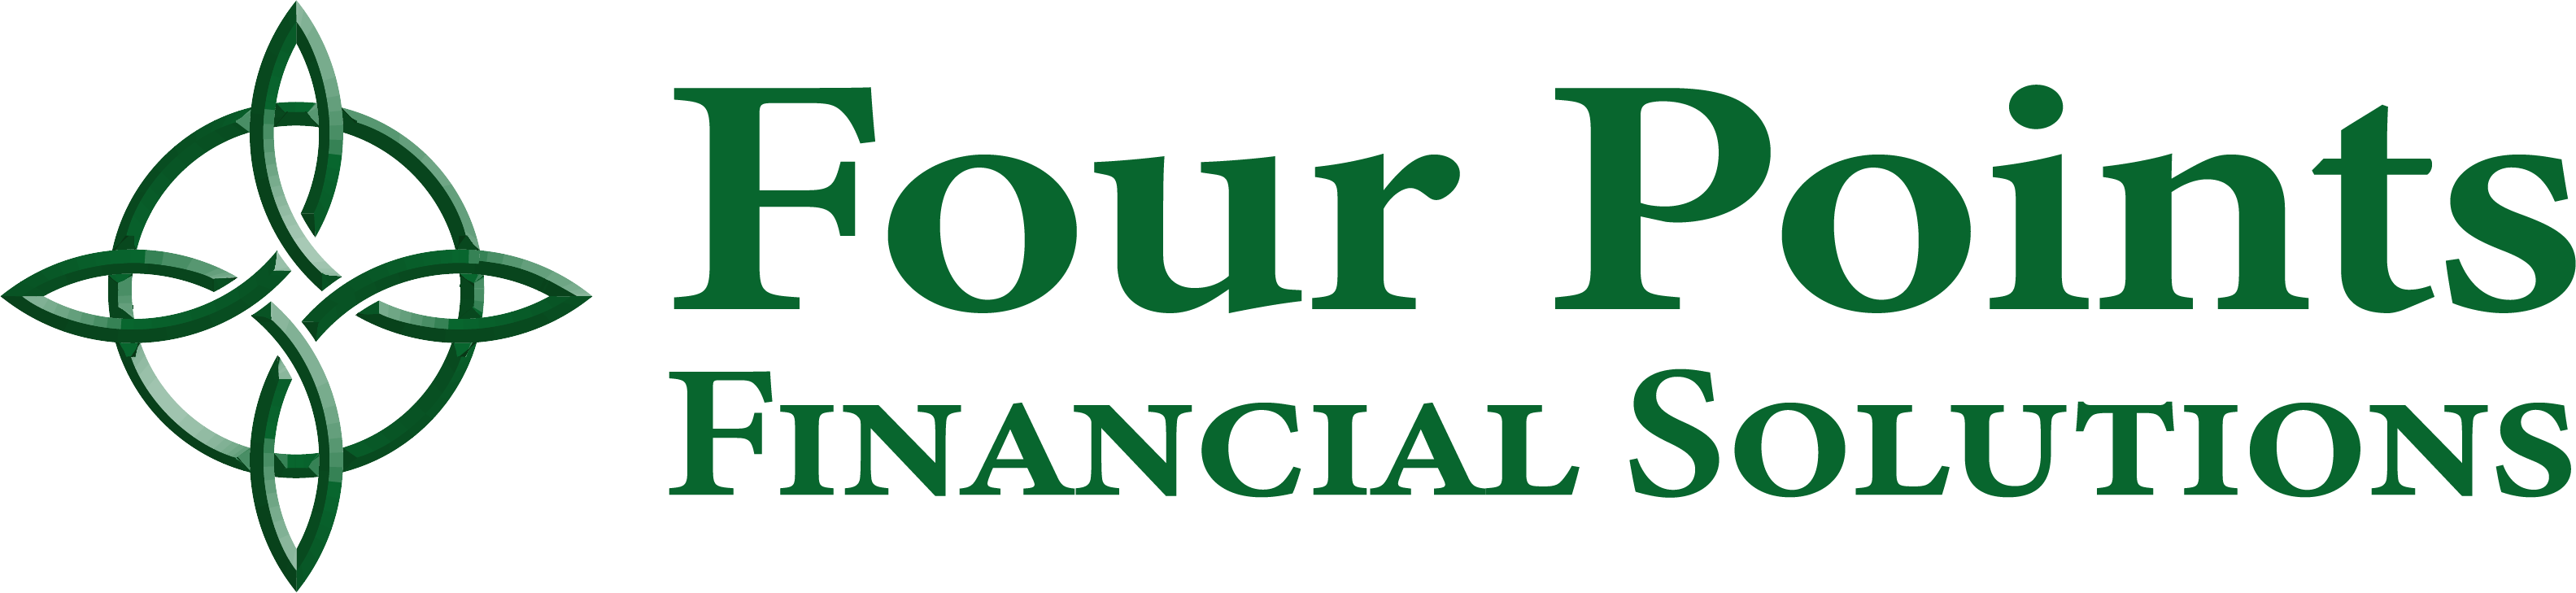 Four Points Financial Solutions